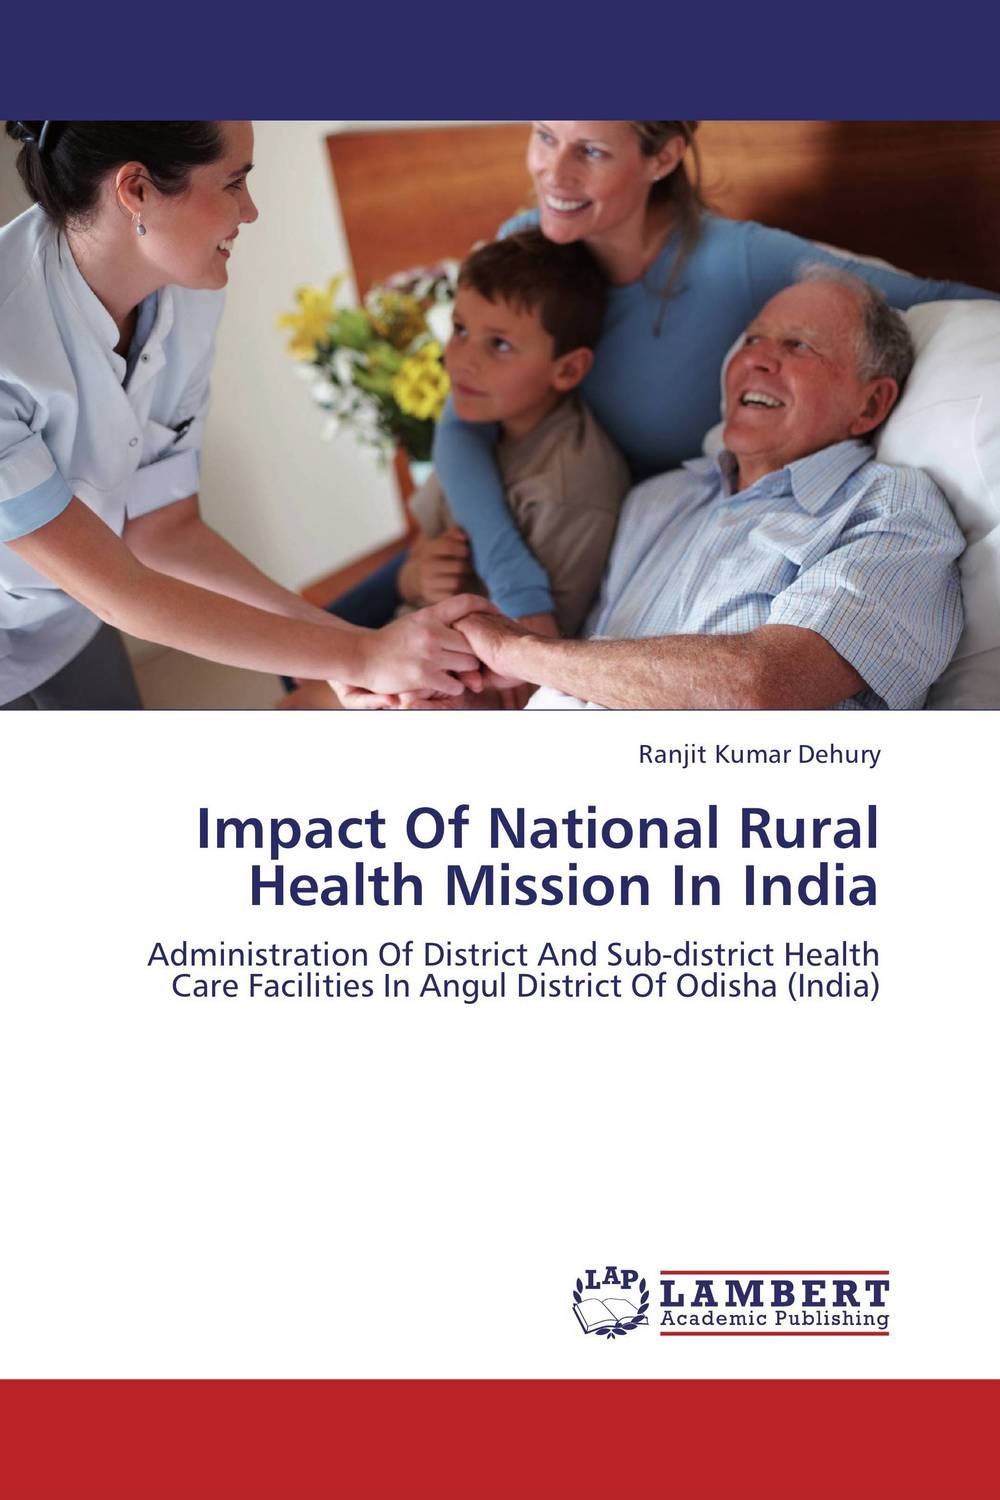 Impact Of National Rural Health Mission In India community health care program assets